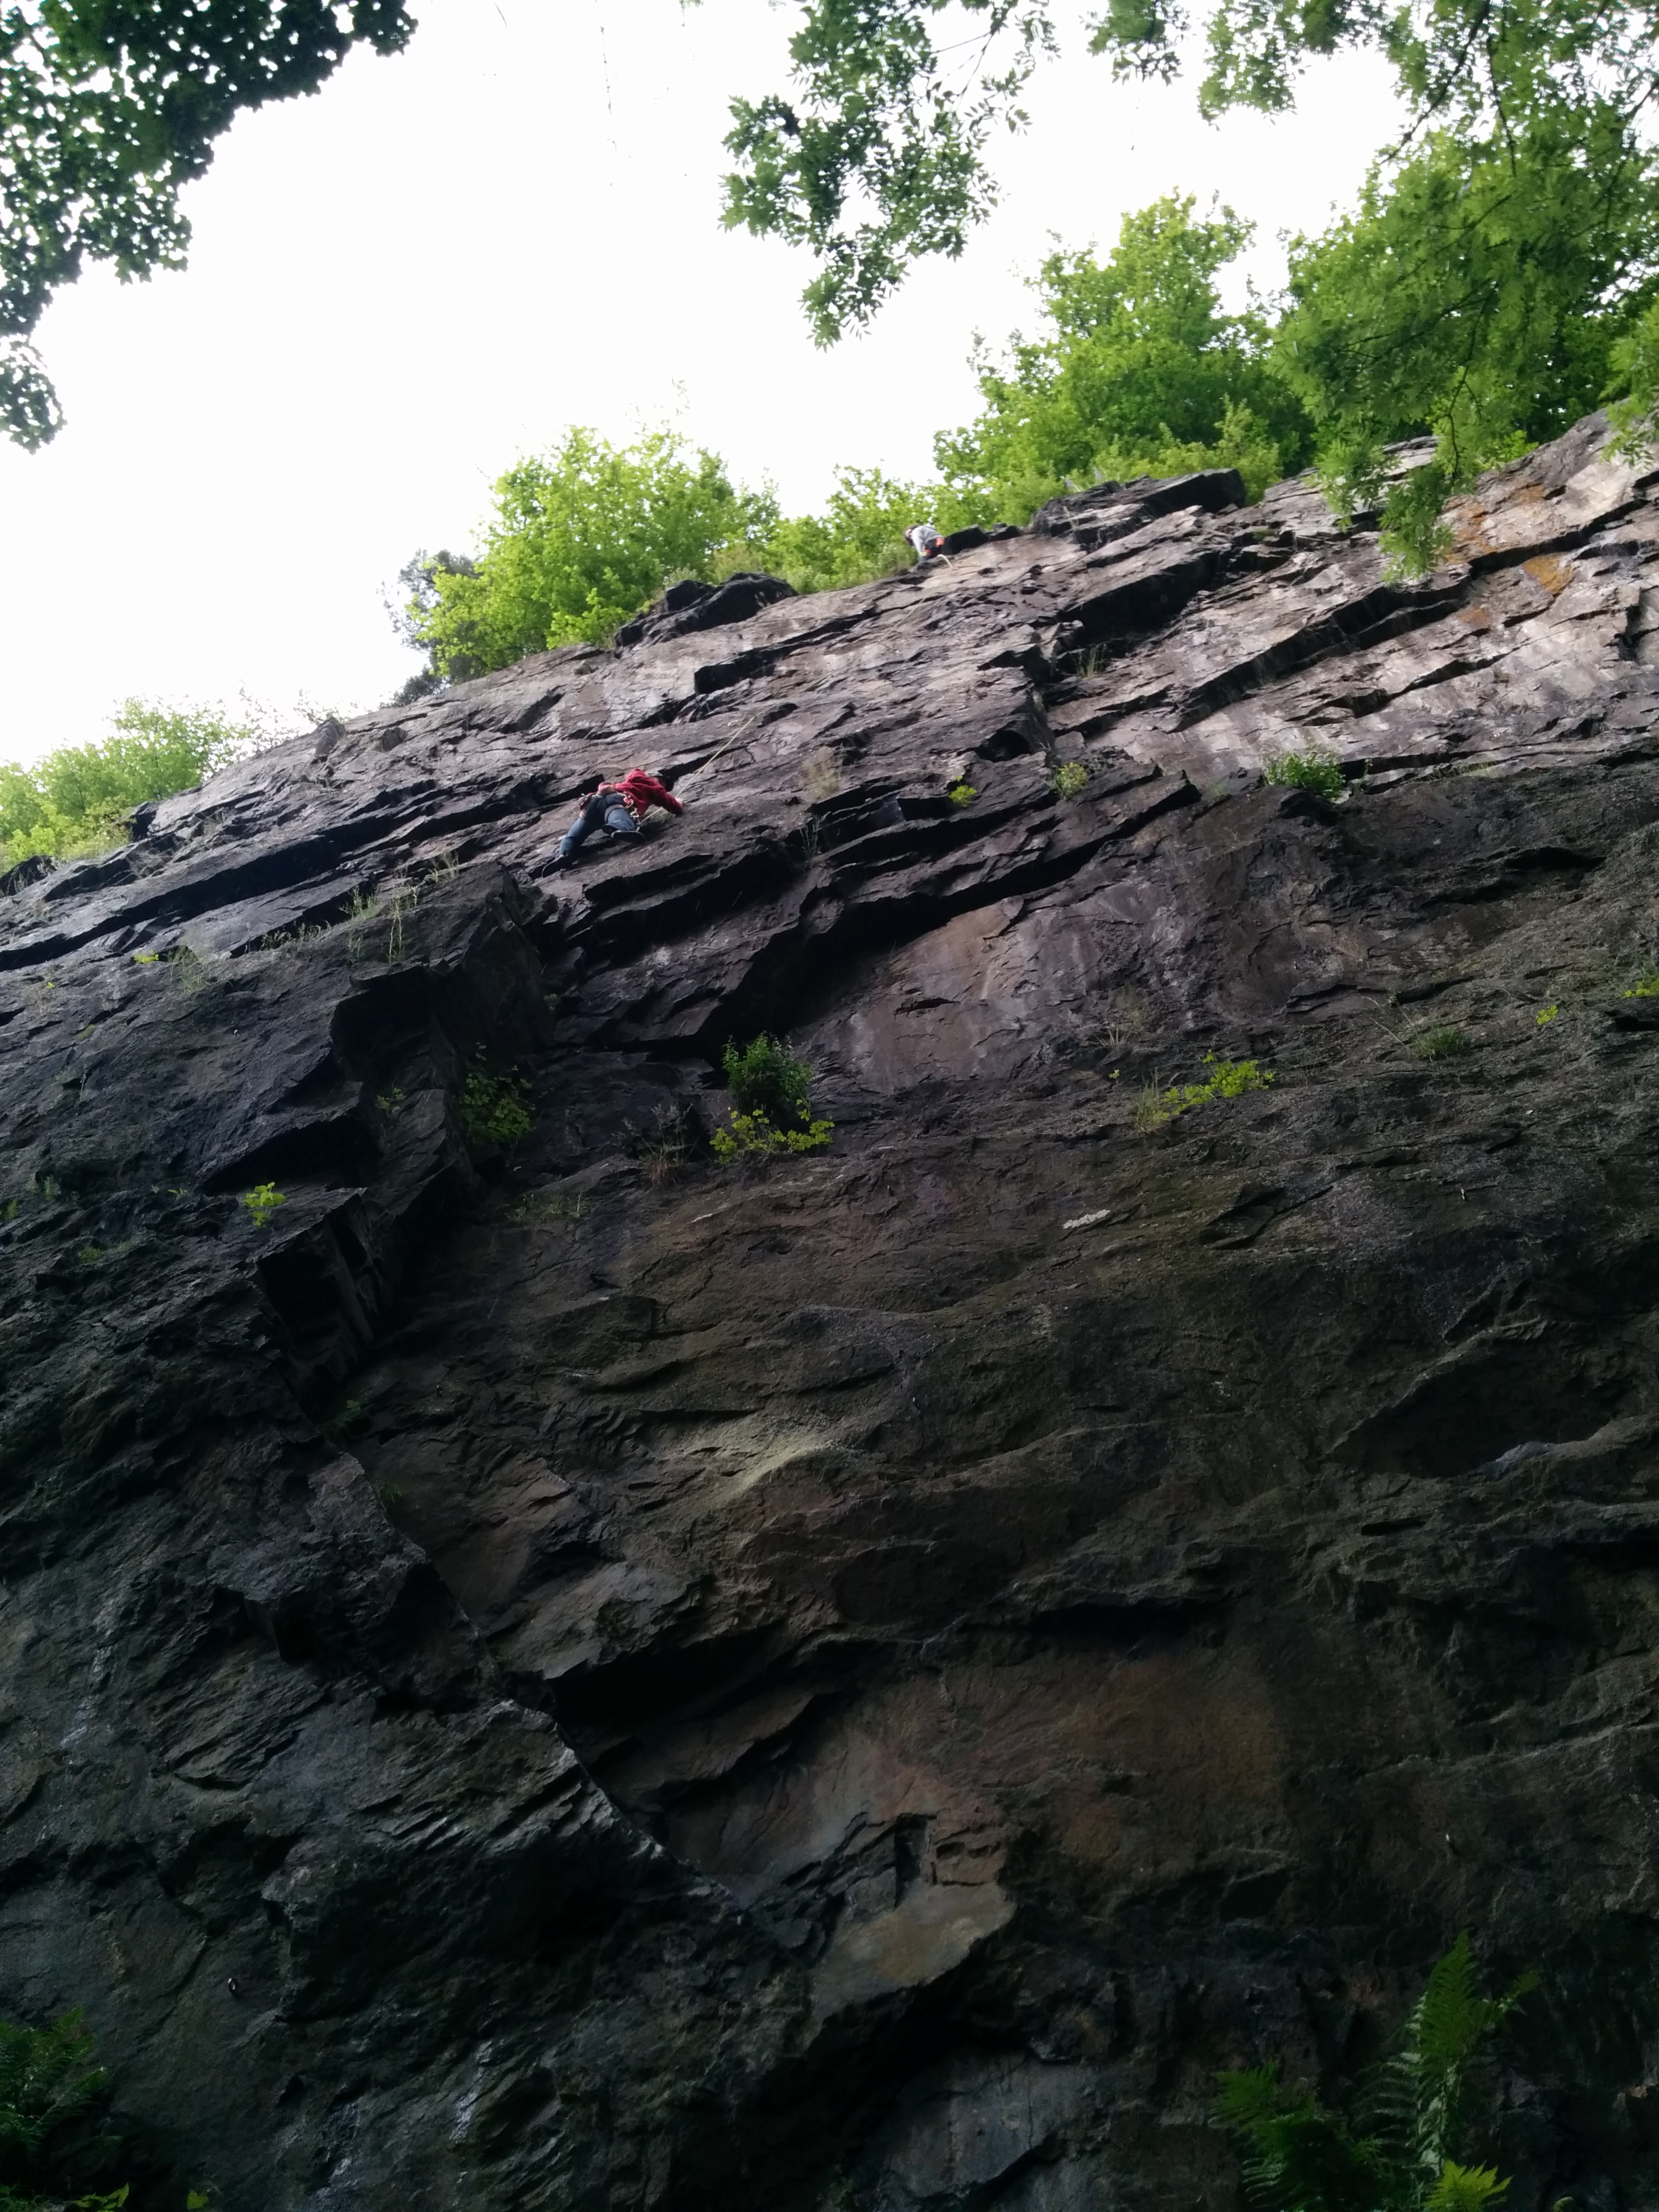 The first unsupervised belaying from top